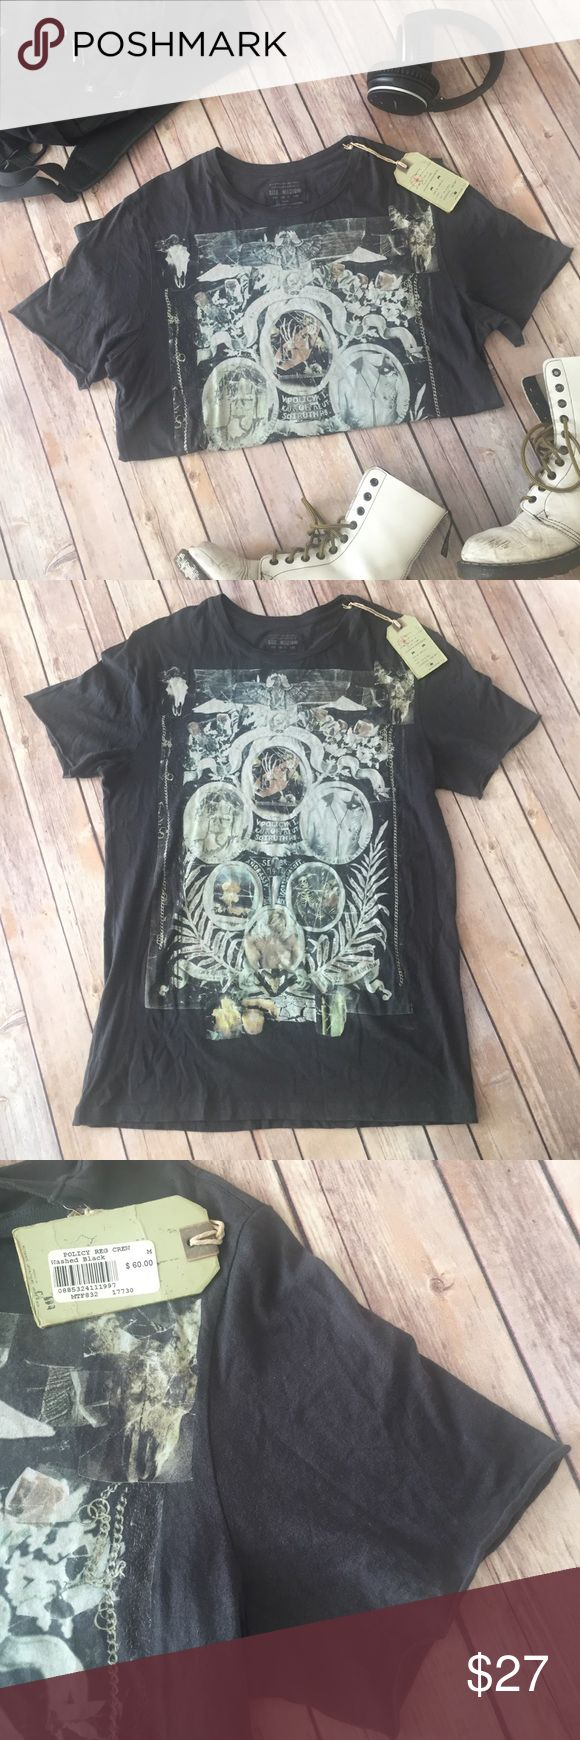 """ALLSAINT SPITALFIELDS Gray graphic T-shirt Men's Medium Soft 100% cotton t-shirt with seam-free sleeves (rolled edge). 29"""" long, 9"""" wide, 8"""" sleeve. NWT. Allsaints Spitalfields Shirts Tees - Short Sleeve"""